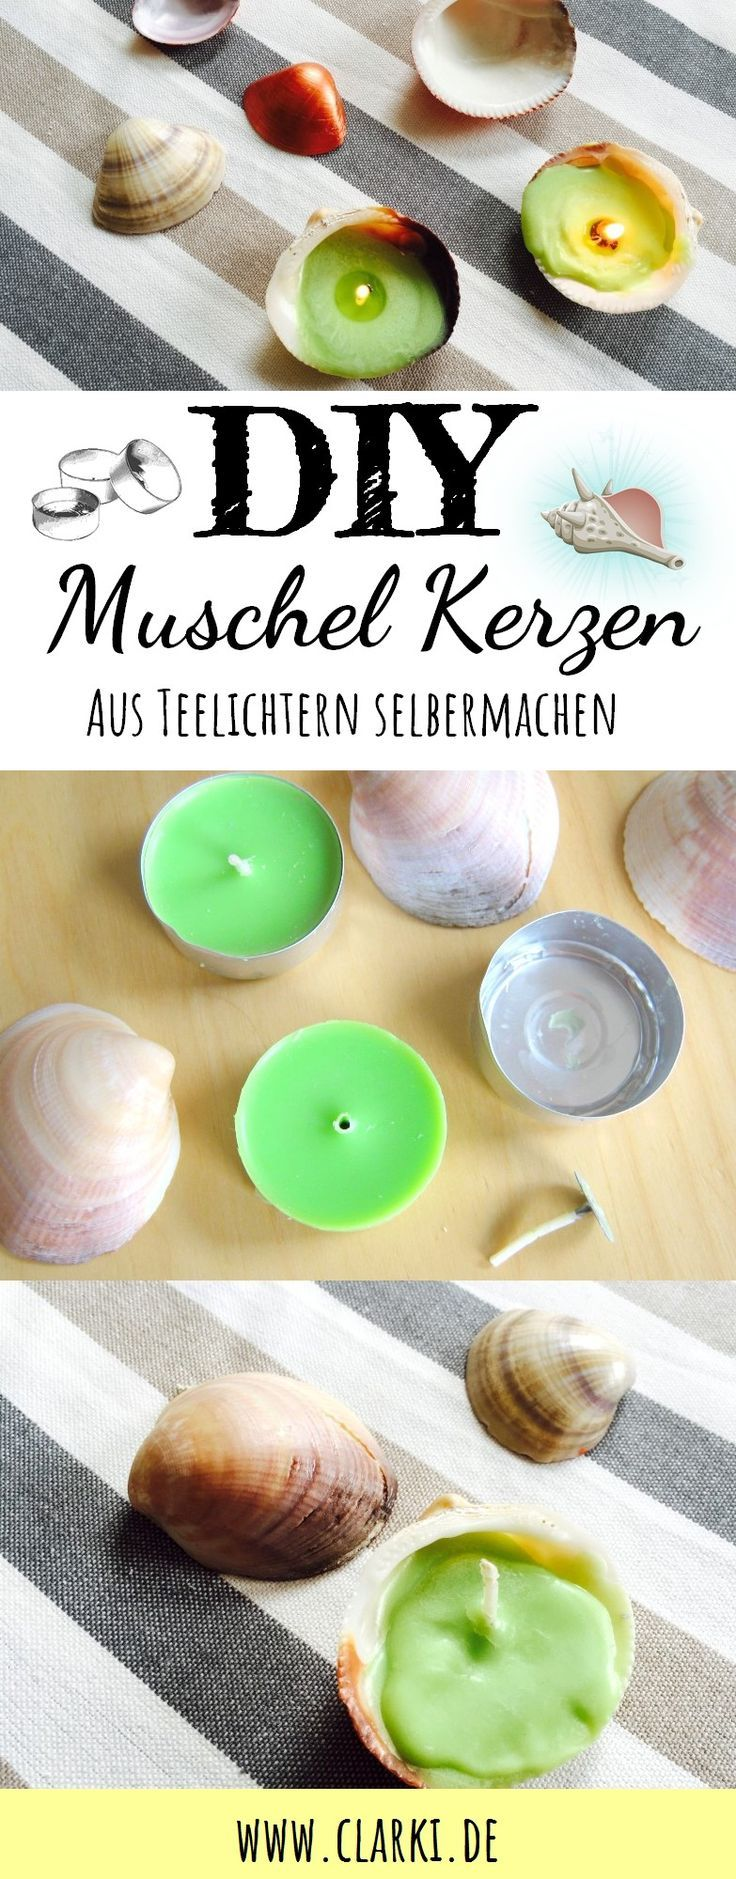 DIY decoration with shells: making tealights and copper shells yourself